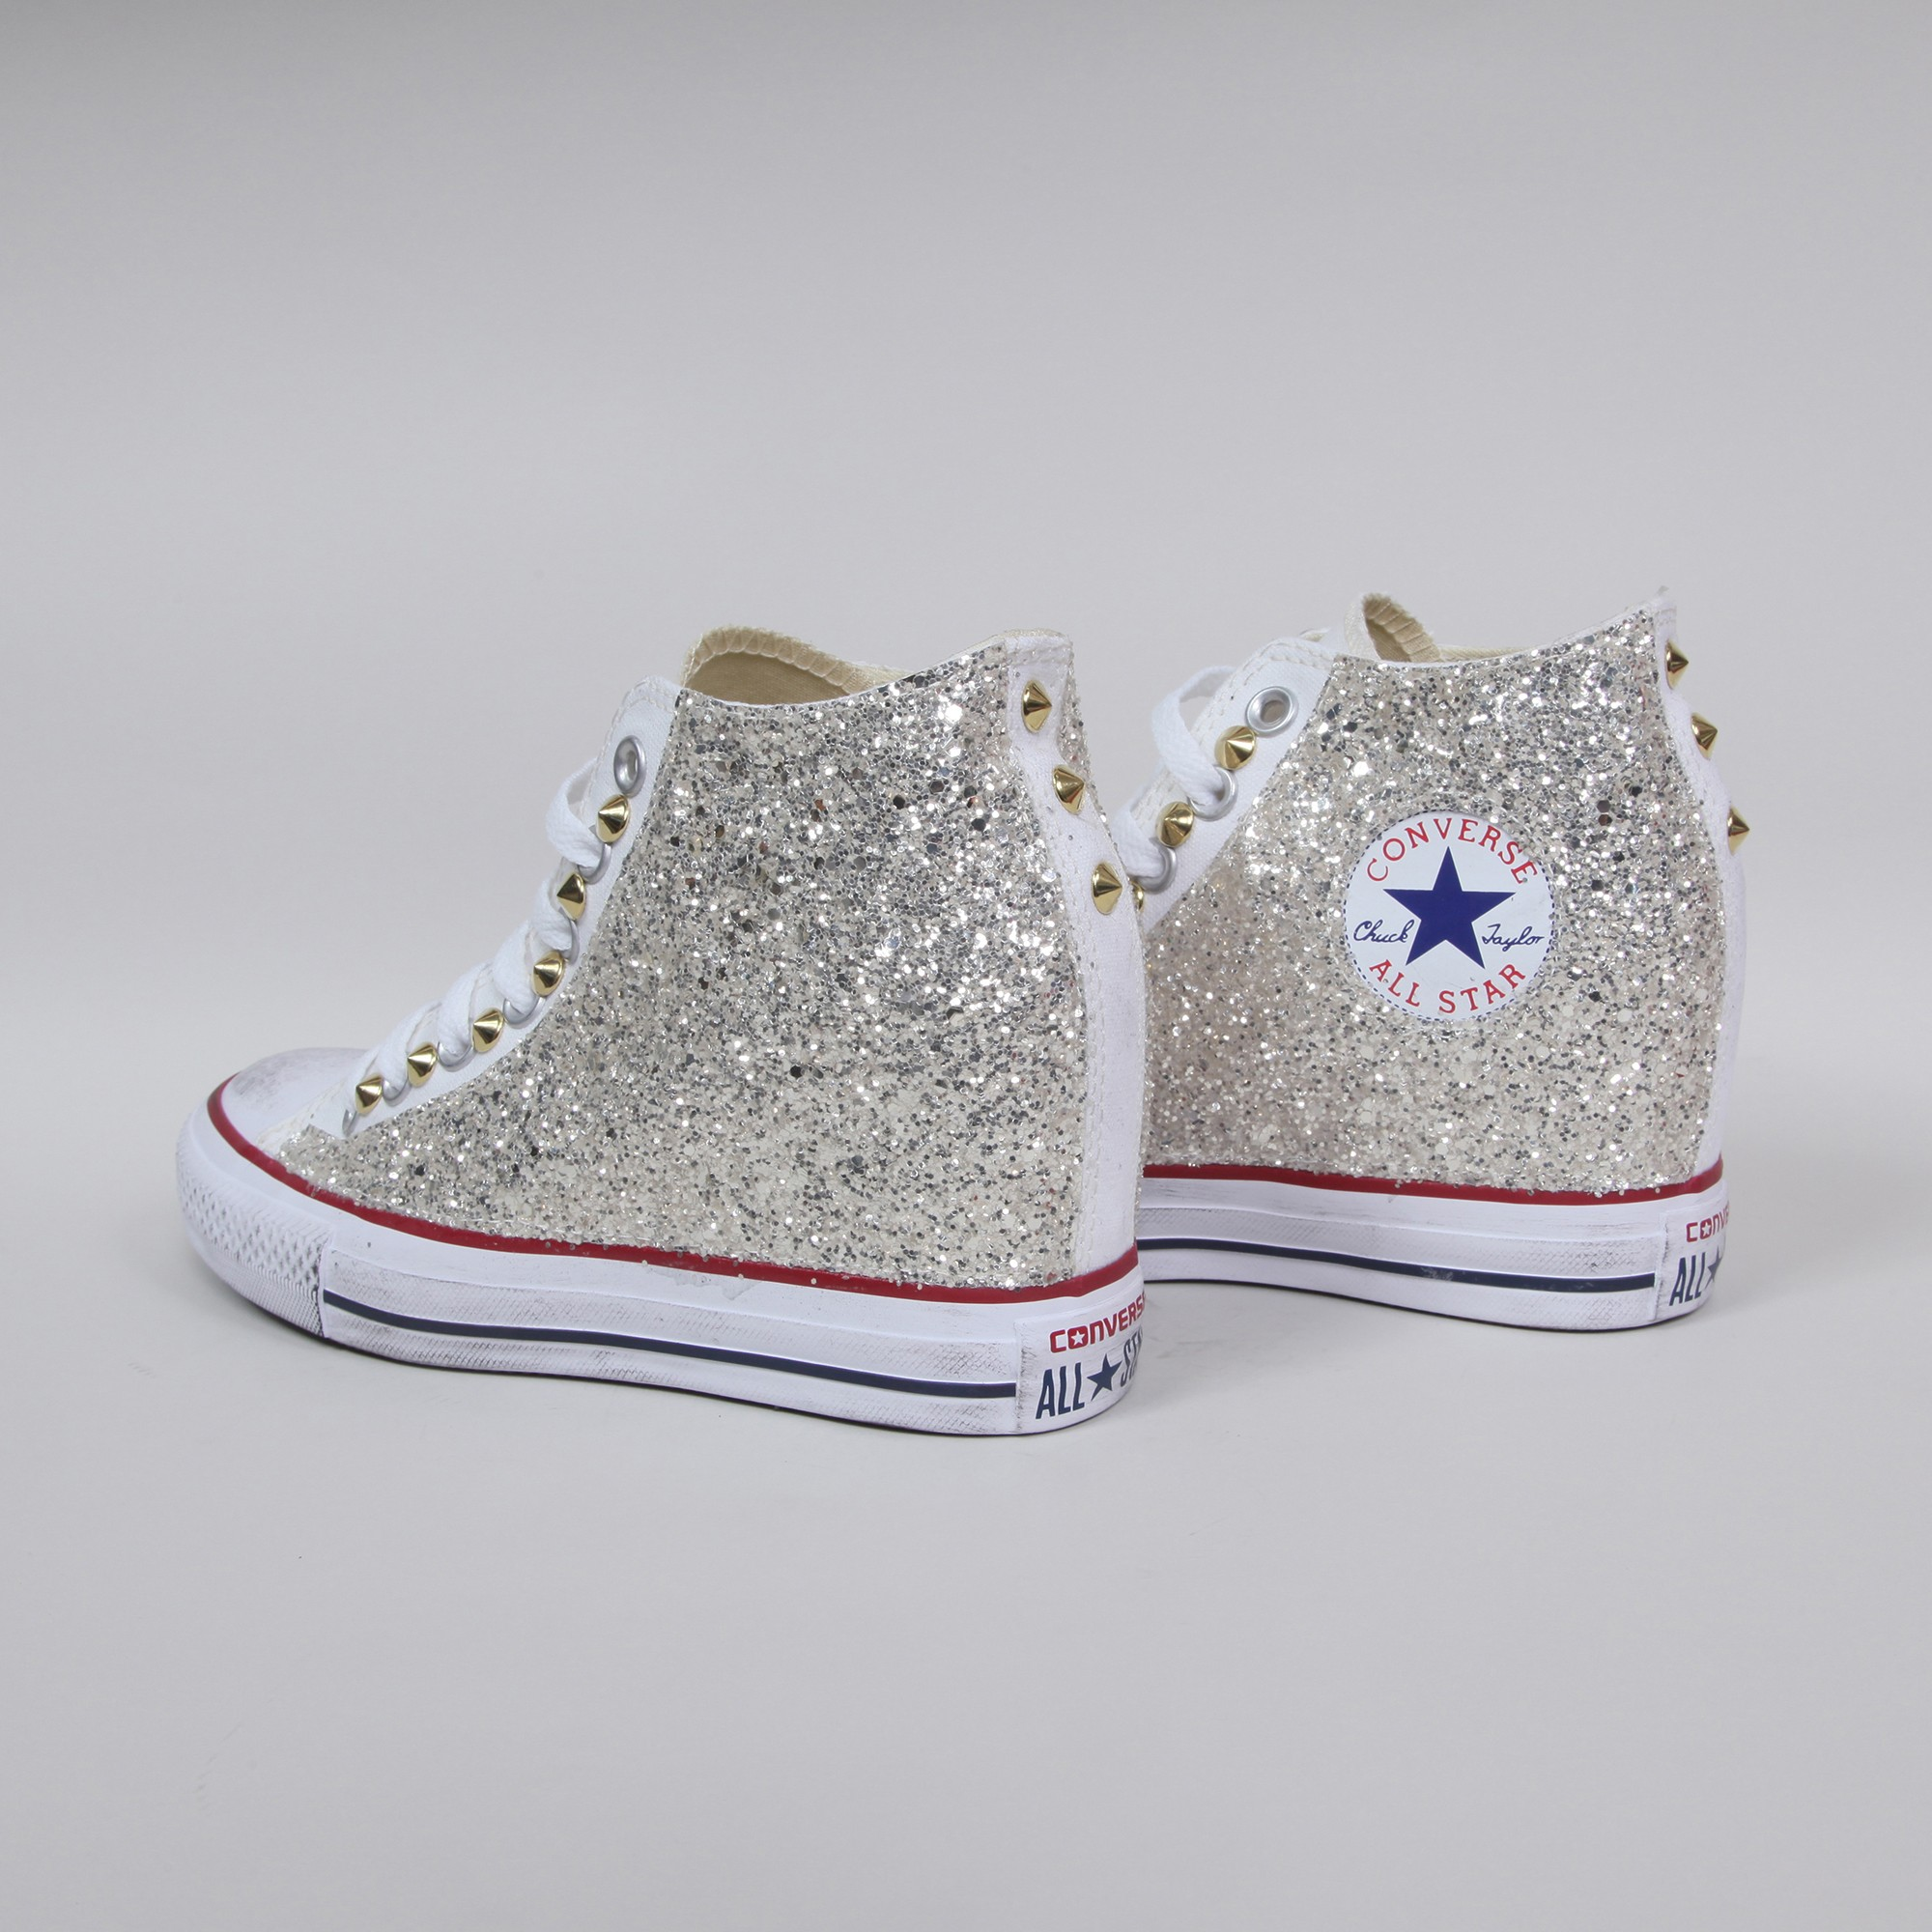 All Clfkj1 Converse Off46sconti Acquista Con Rialzo Interno Star rBexoCd